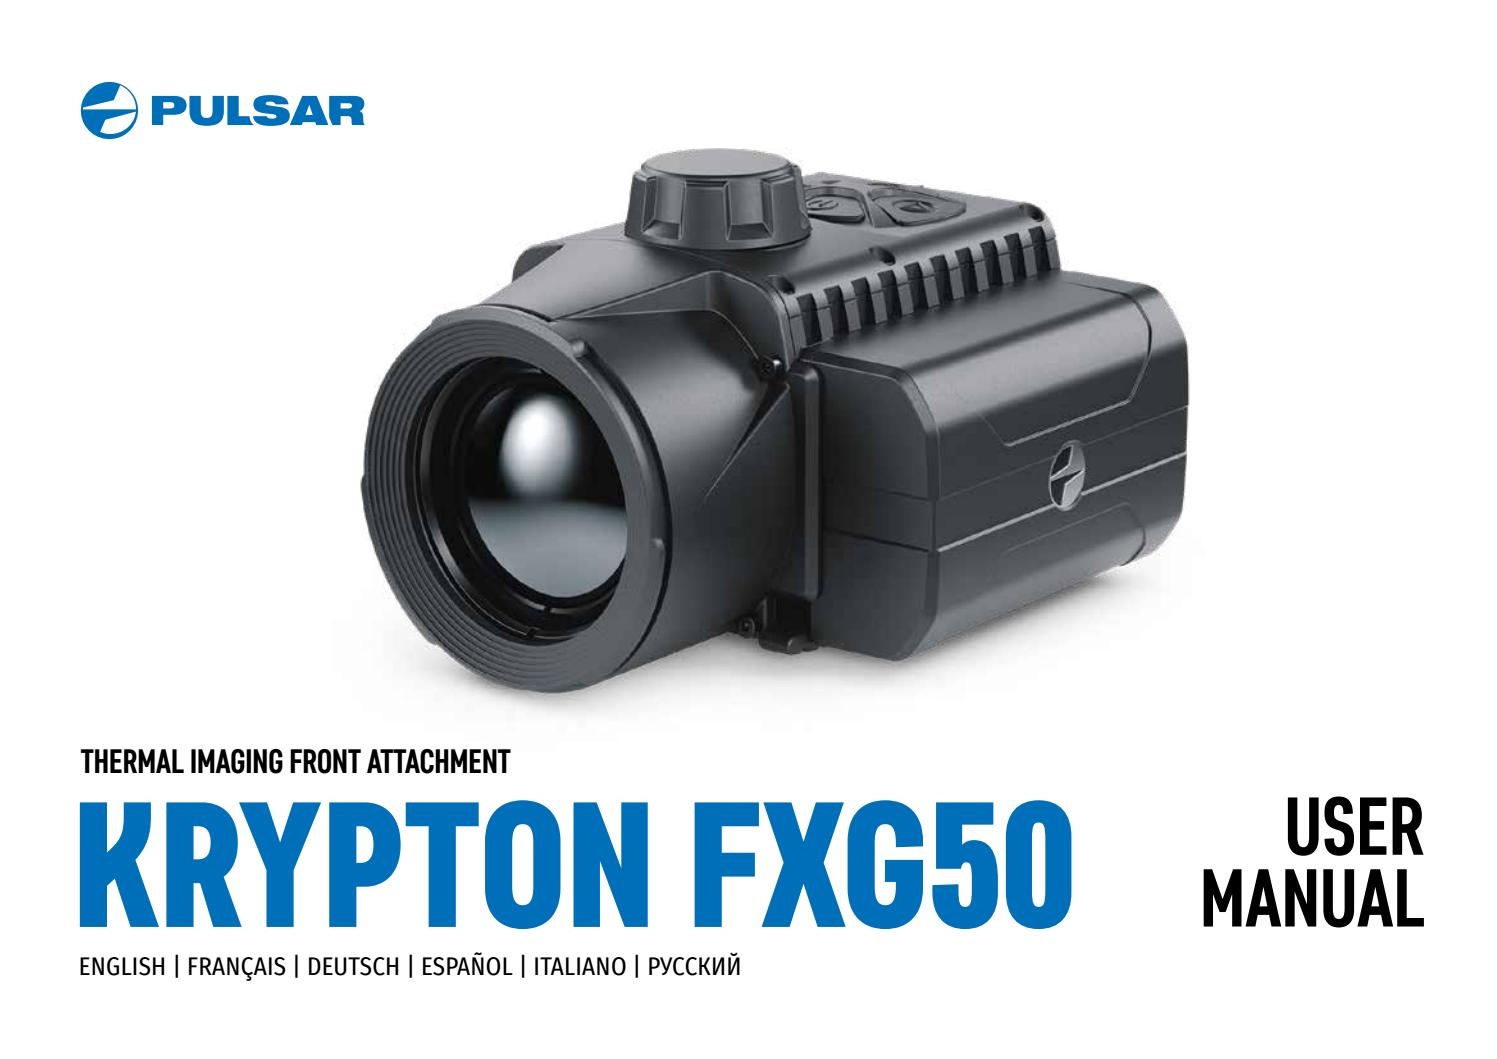 Krypton Fxg50 Thermal Imaging Front Attachment User Manual By Yukon Advanced Optics Worldwide Issuu